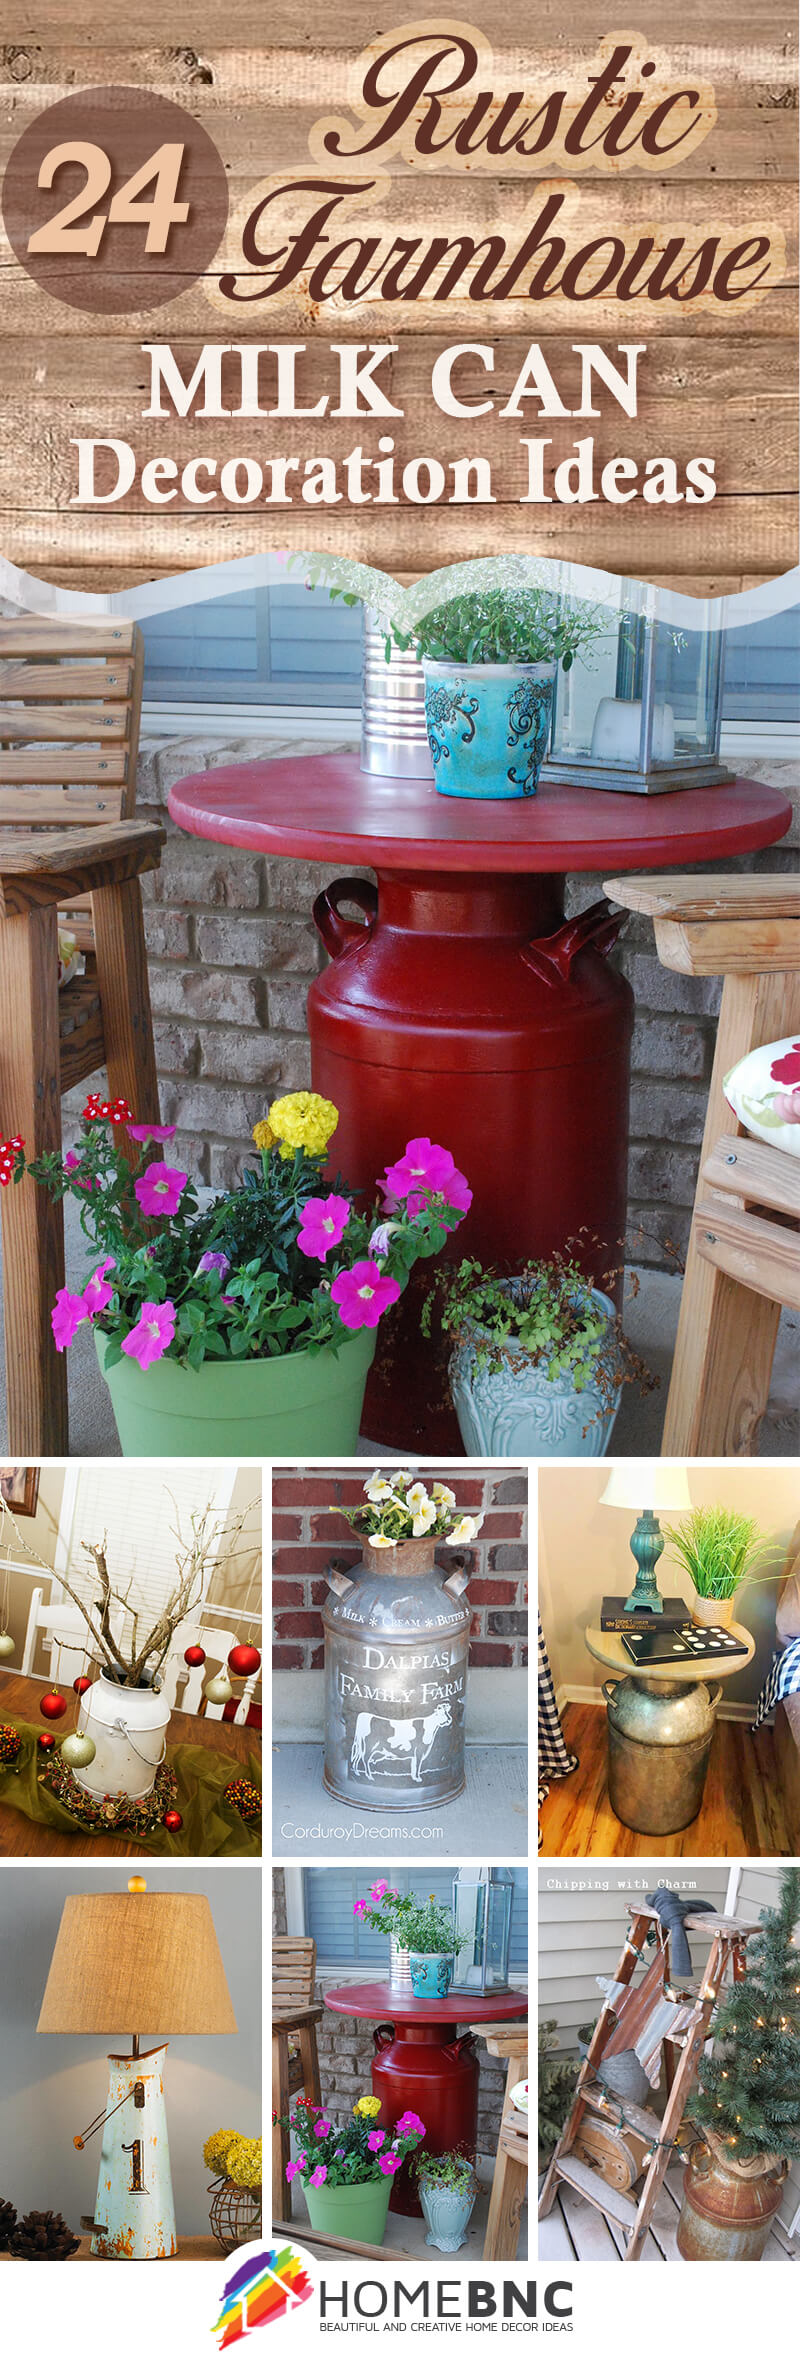 Rustic Farmhouse Milk Can Decorating Ideas